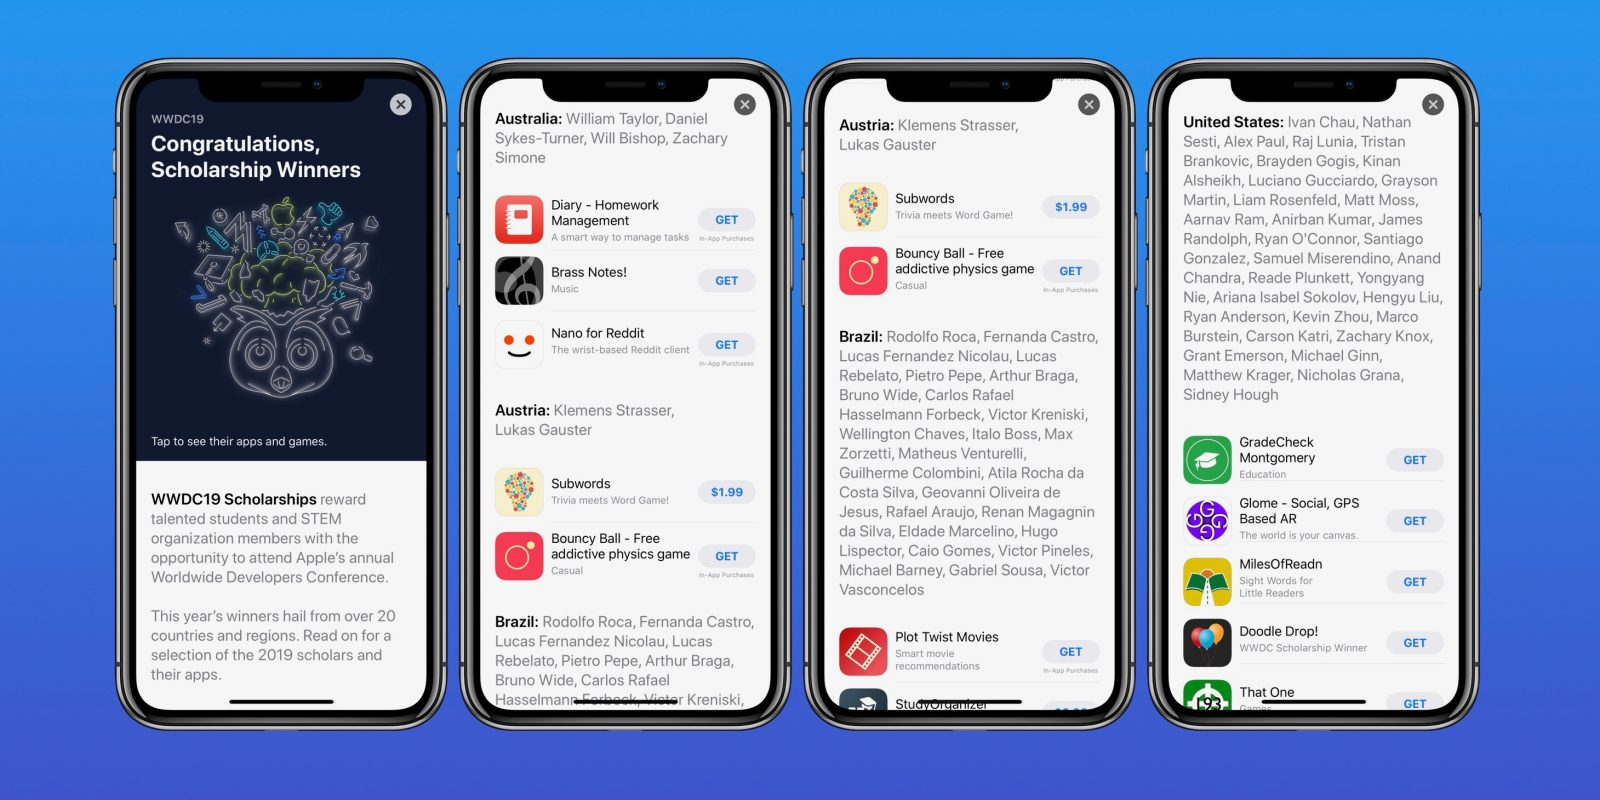 Apple Features Apps And Games From Wwdc Scholarship Winners In App